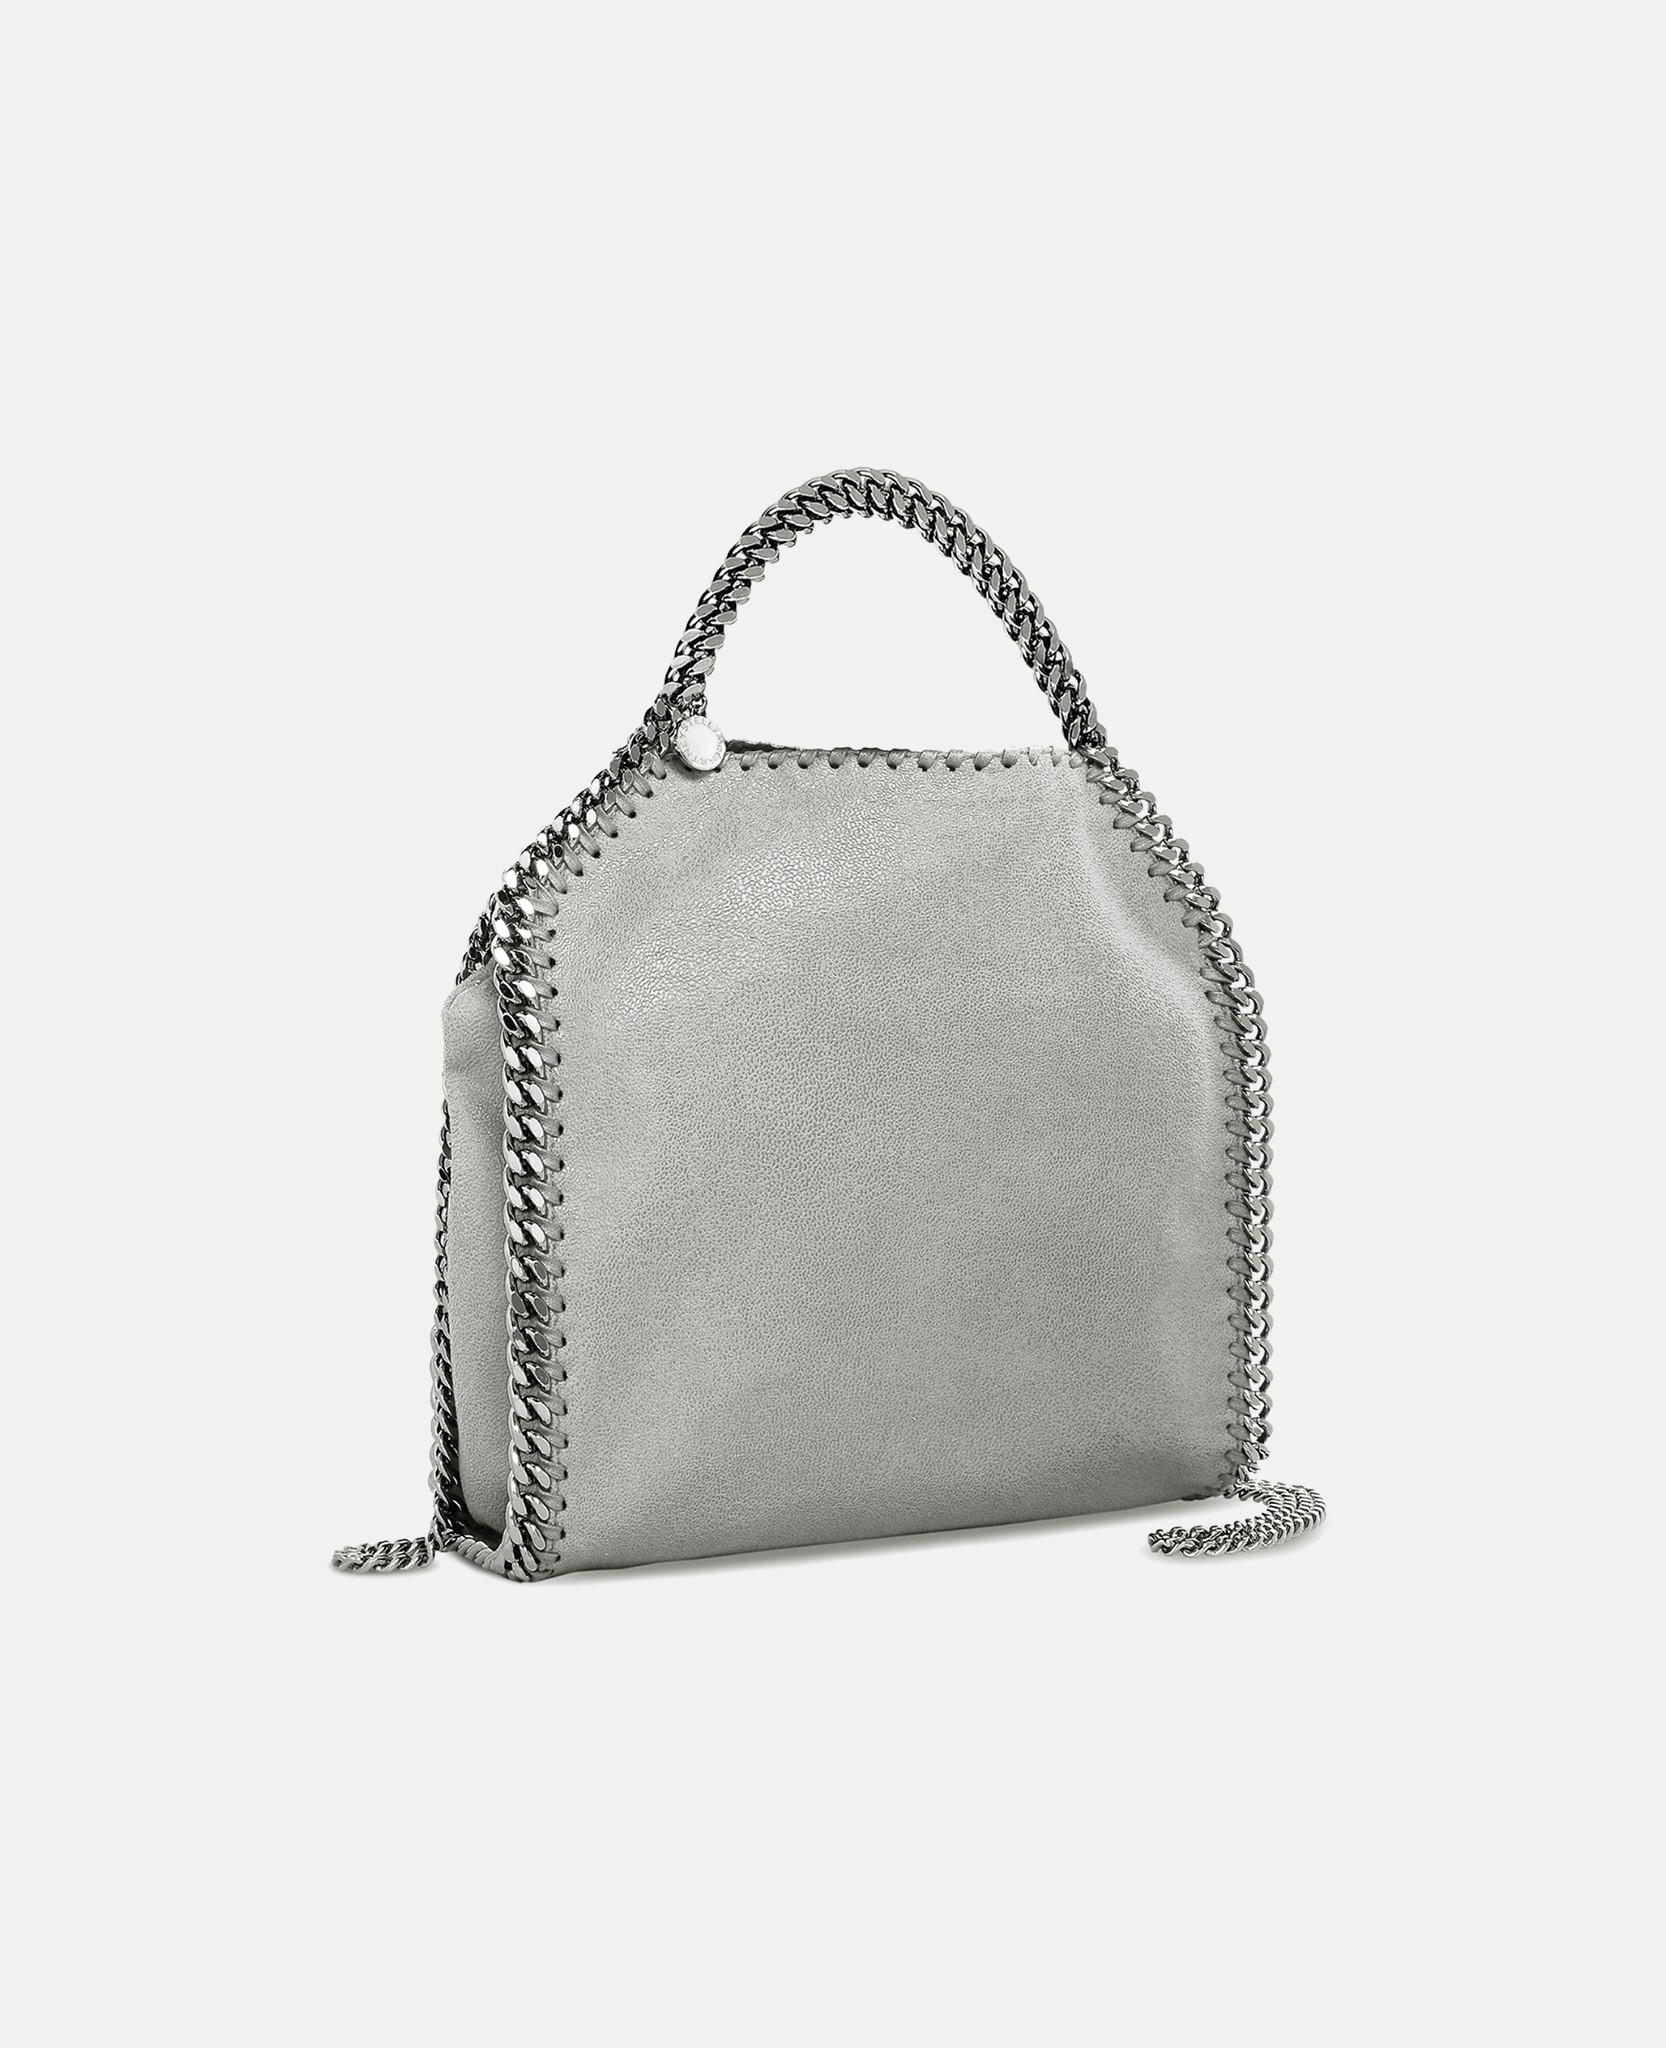 70f269d6ddc Lyst - Stella McCartney Light Gray Falabella Shaggy Deer Mini Tote ...